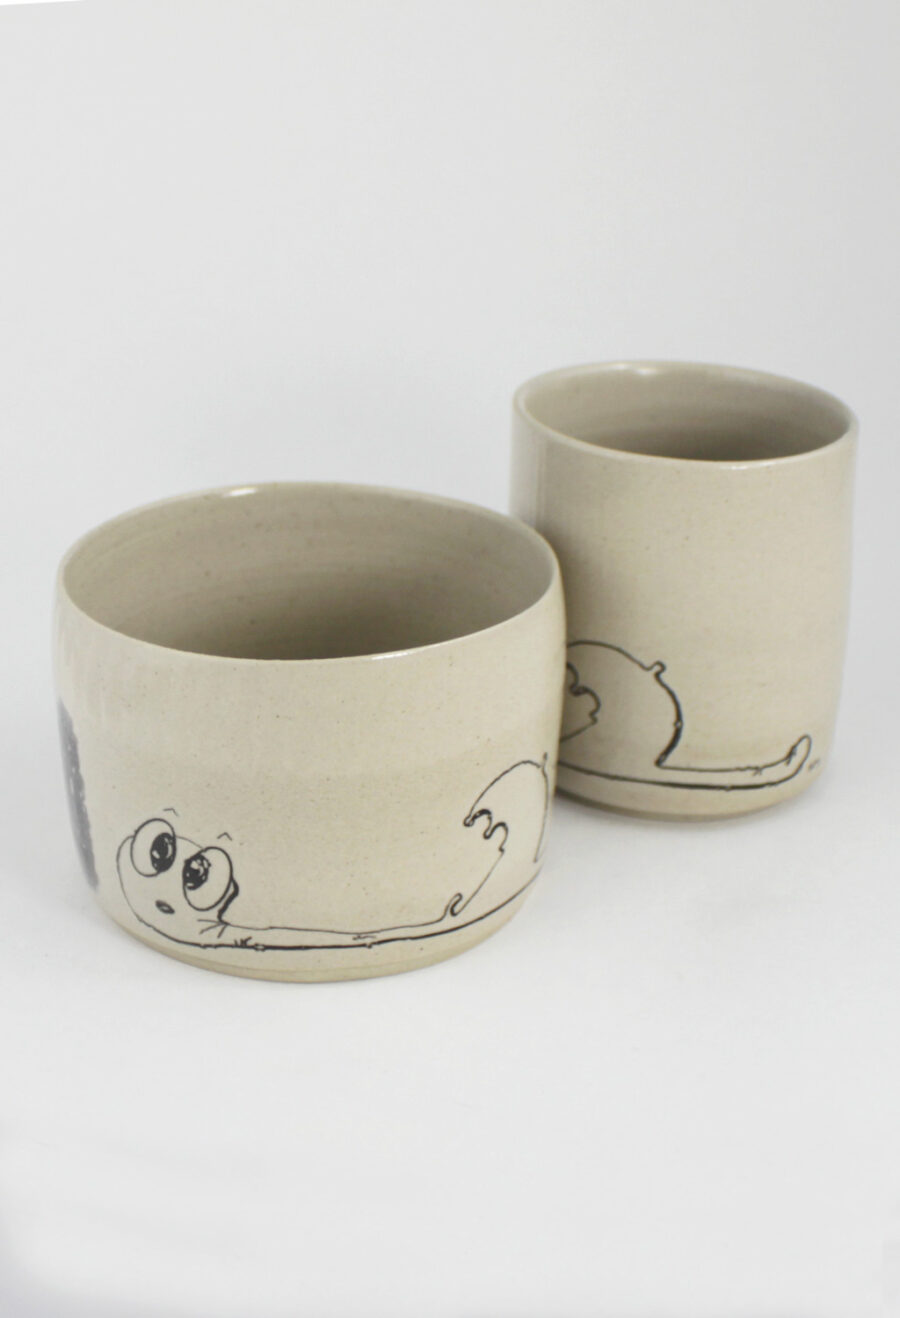 steinzeug im set the-worm-ate-nummer-3-schirm-my-deer-illustrated-ceramics